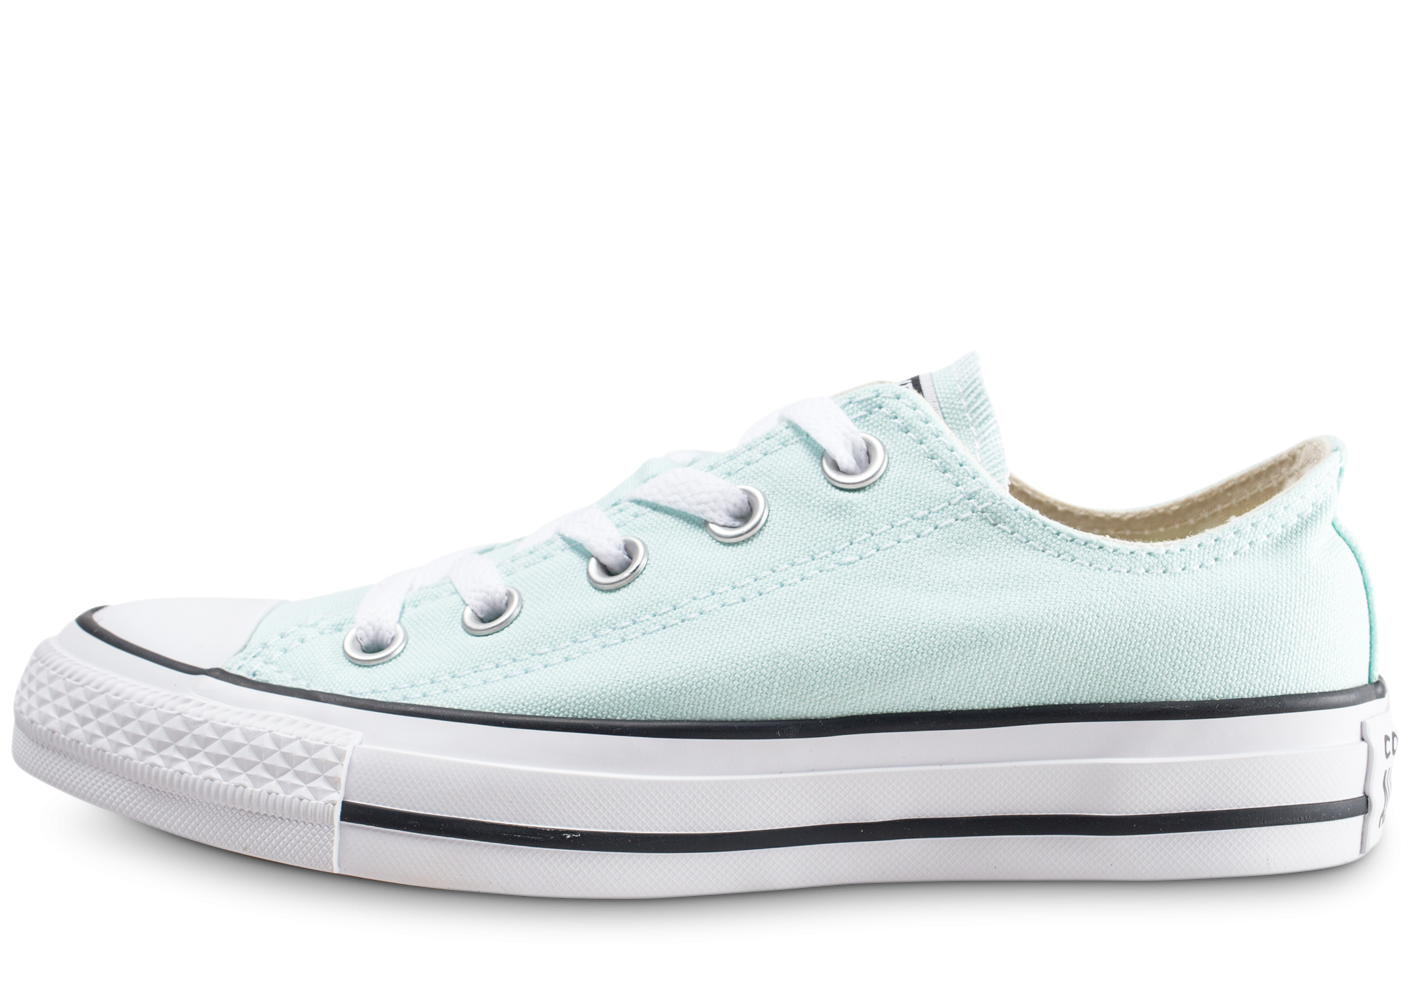 Converse Chuck Taylor All Star Low vert pastel femme